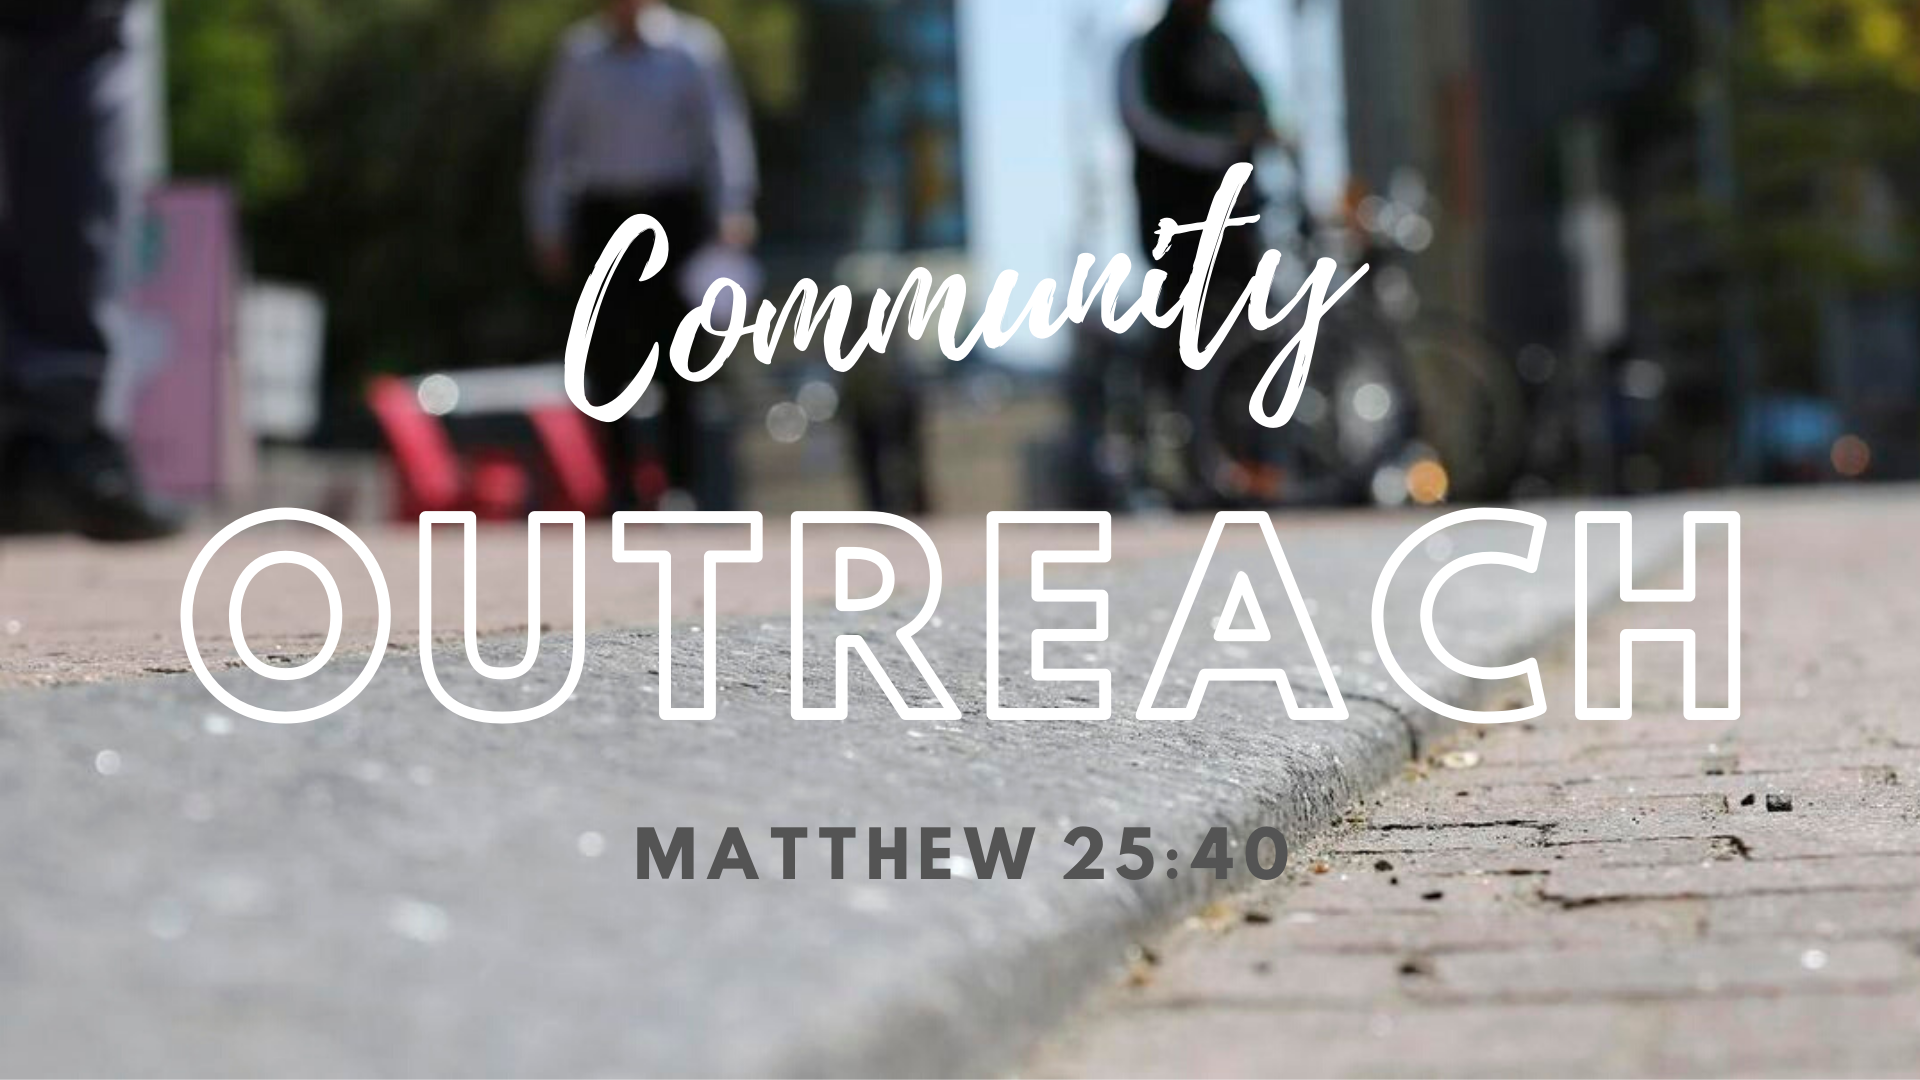 3.Community Outreach Interest